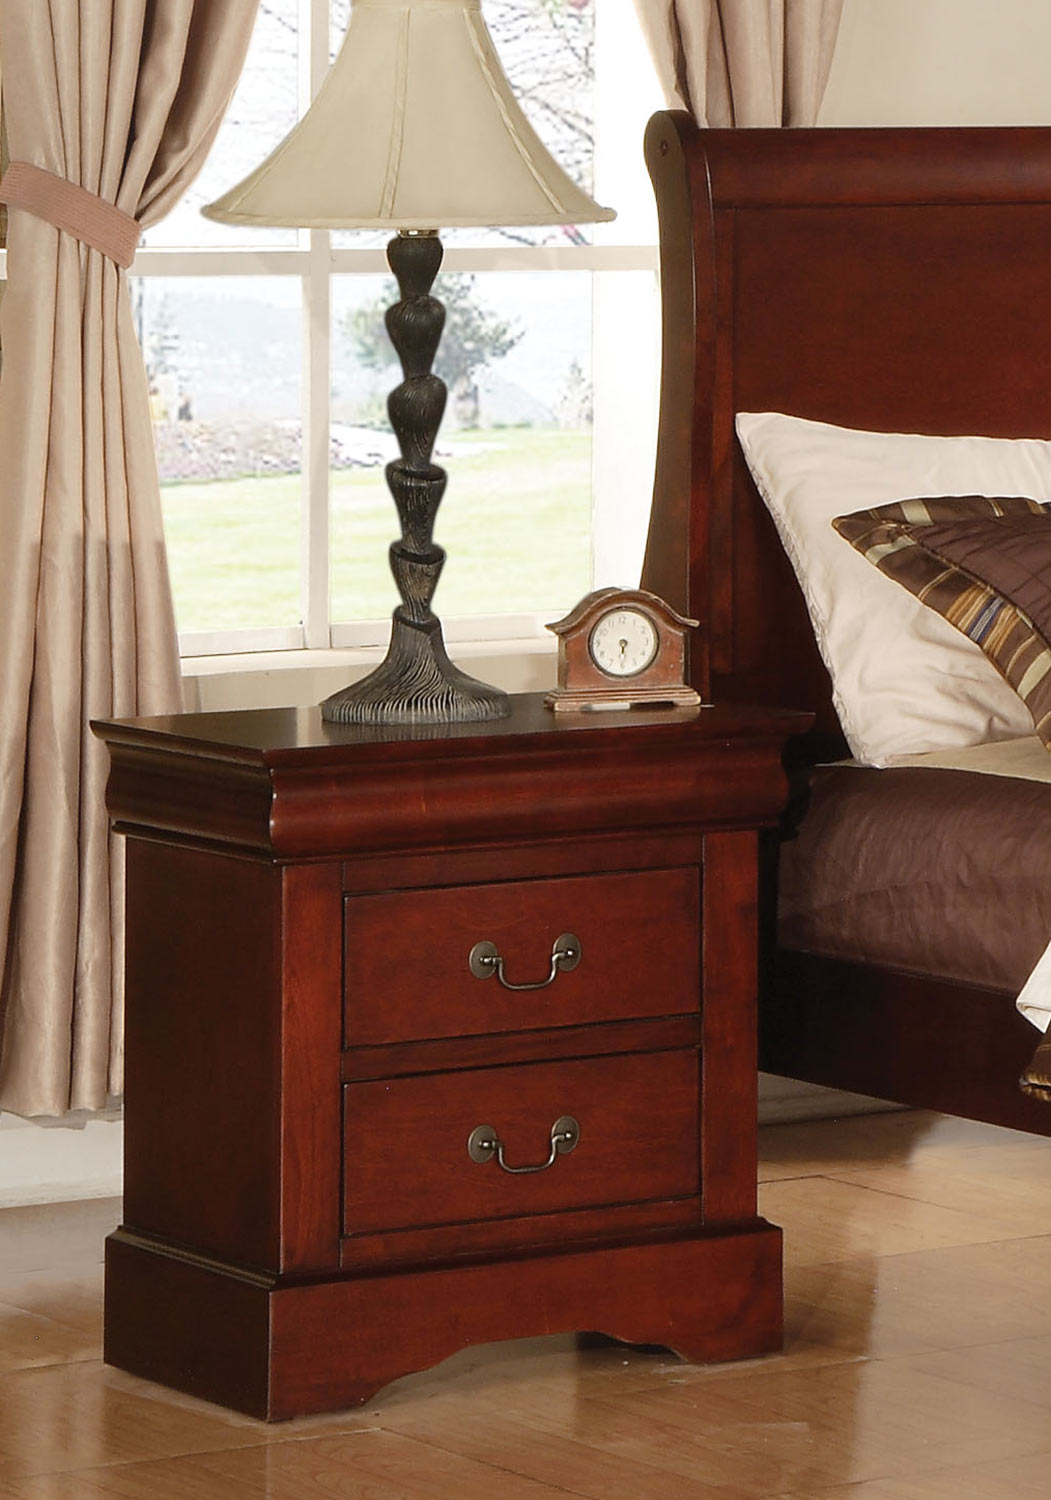 Acme Louis Philippe III Nightstand - Cherry